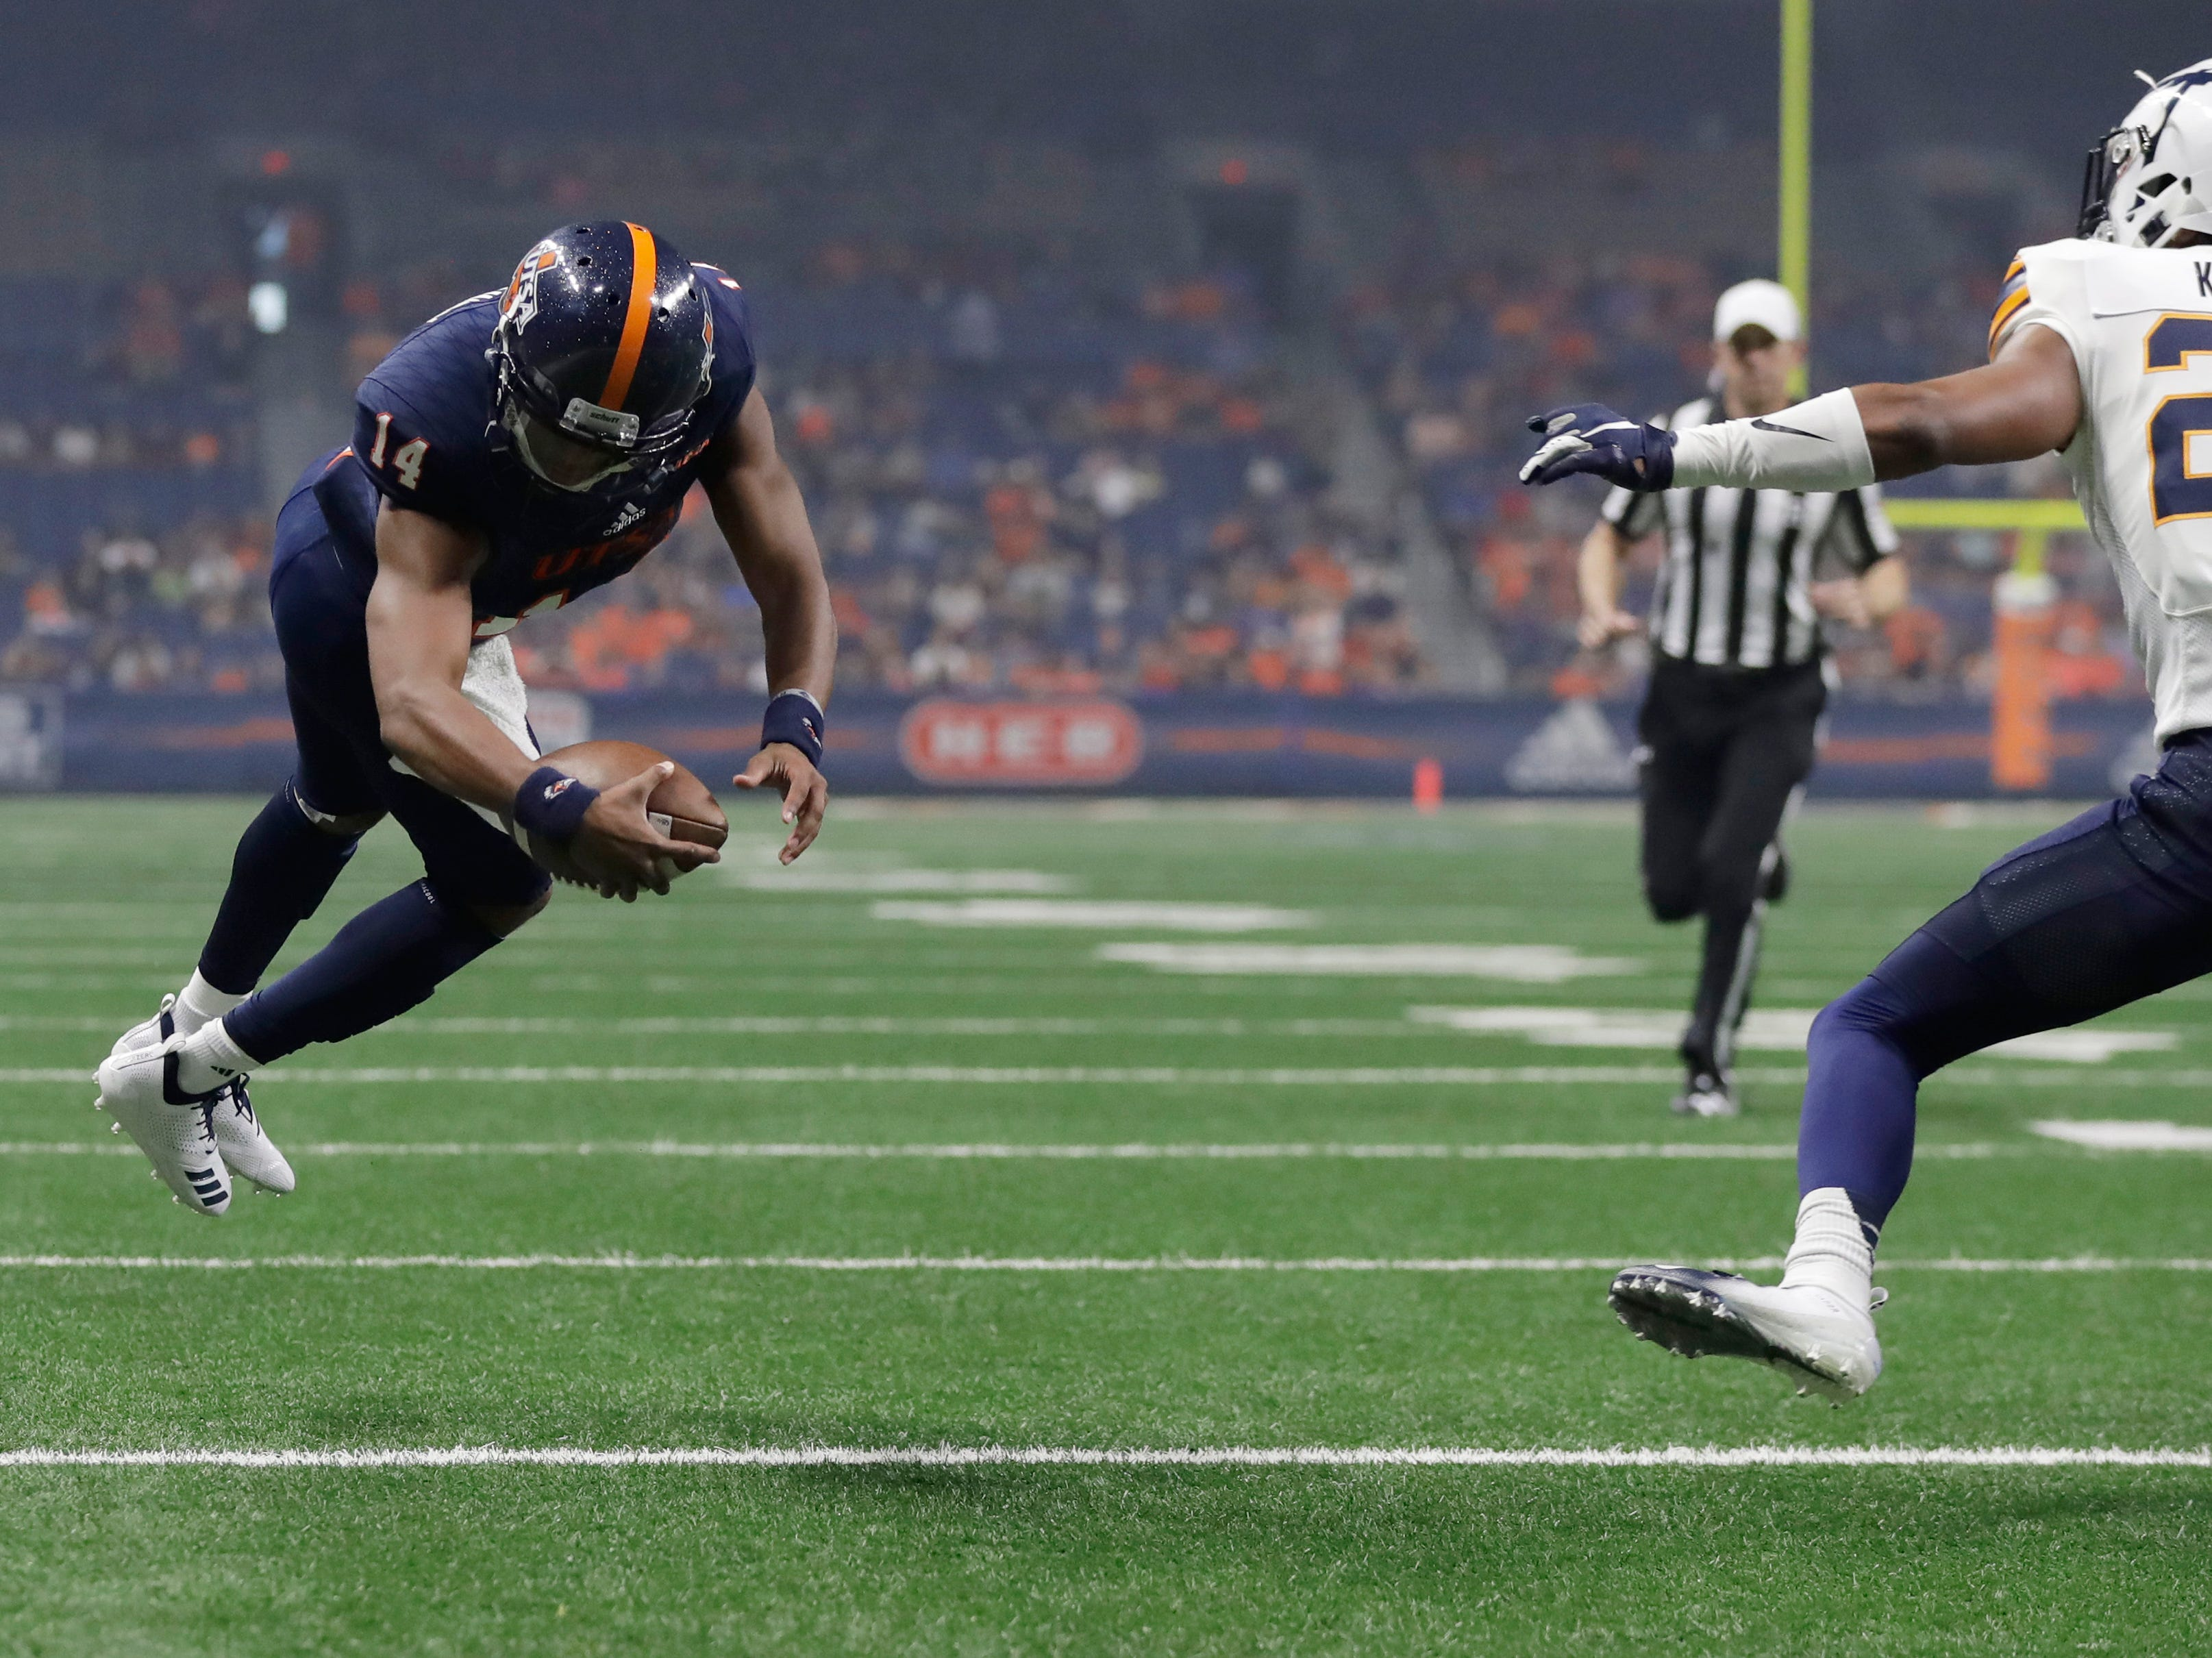 UTSA quarterback Cordale Grundy (14) dives for a touchdown past UTEP defensive back Kahani Smith (24) during the first half of an NCAA college football game Saturday, Sept. 29, 2018, in San Antonio. (AP Photo/Eric Gay)